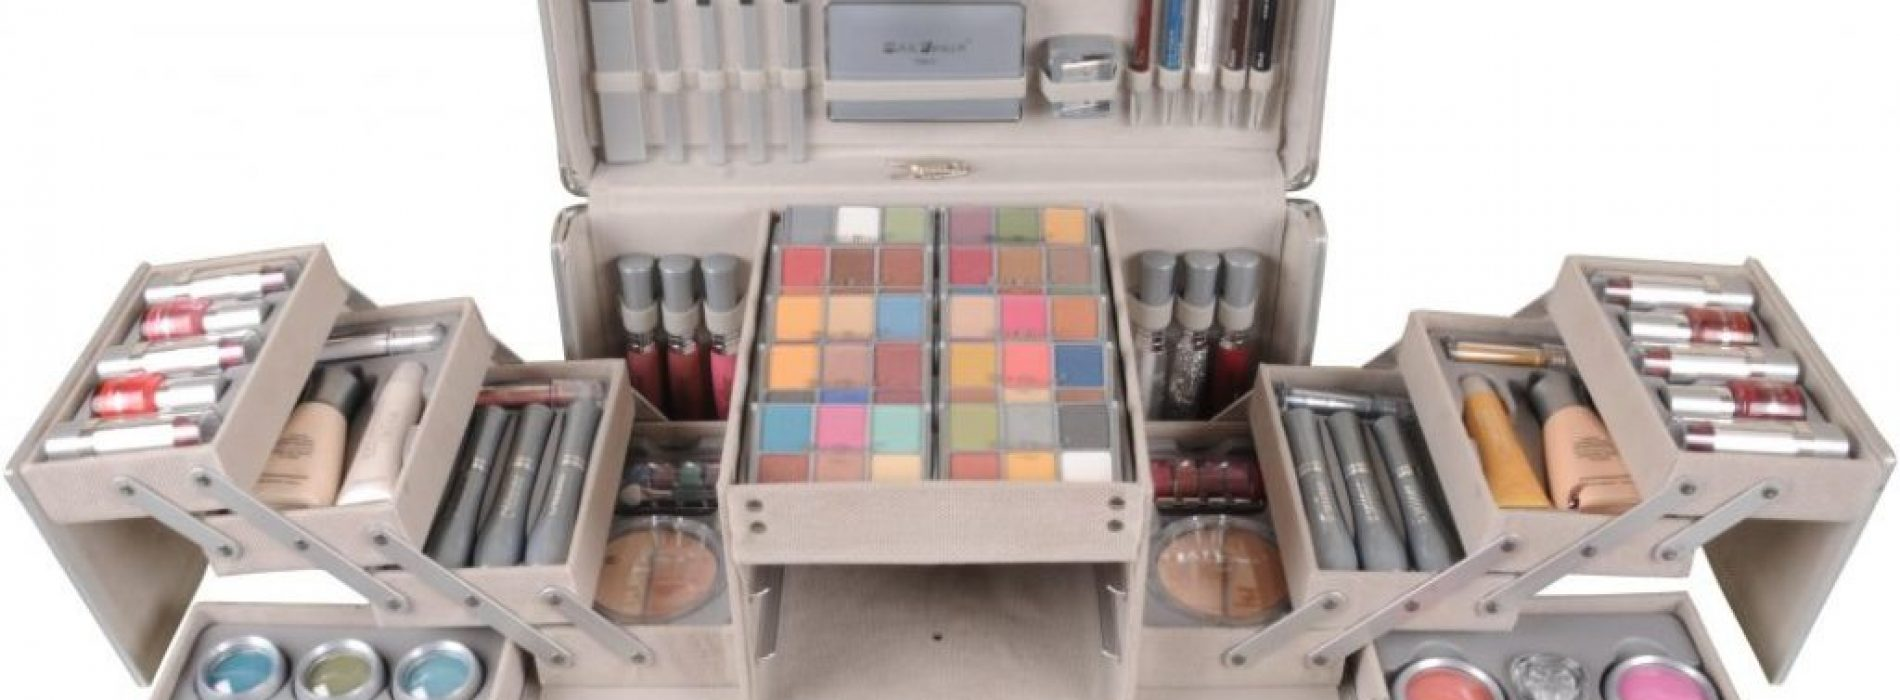 Eye shadows An Essential Ingredients For Any Makeup Vanity Box: